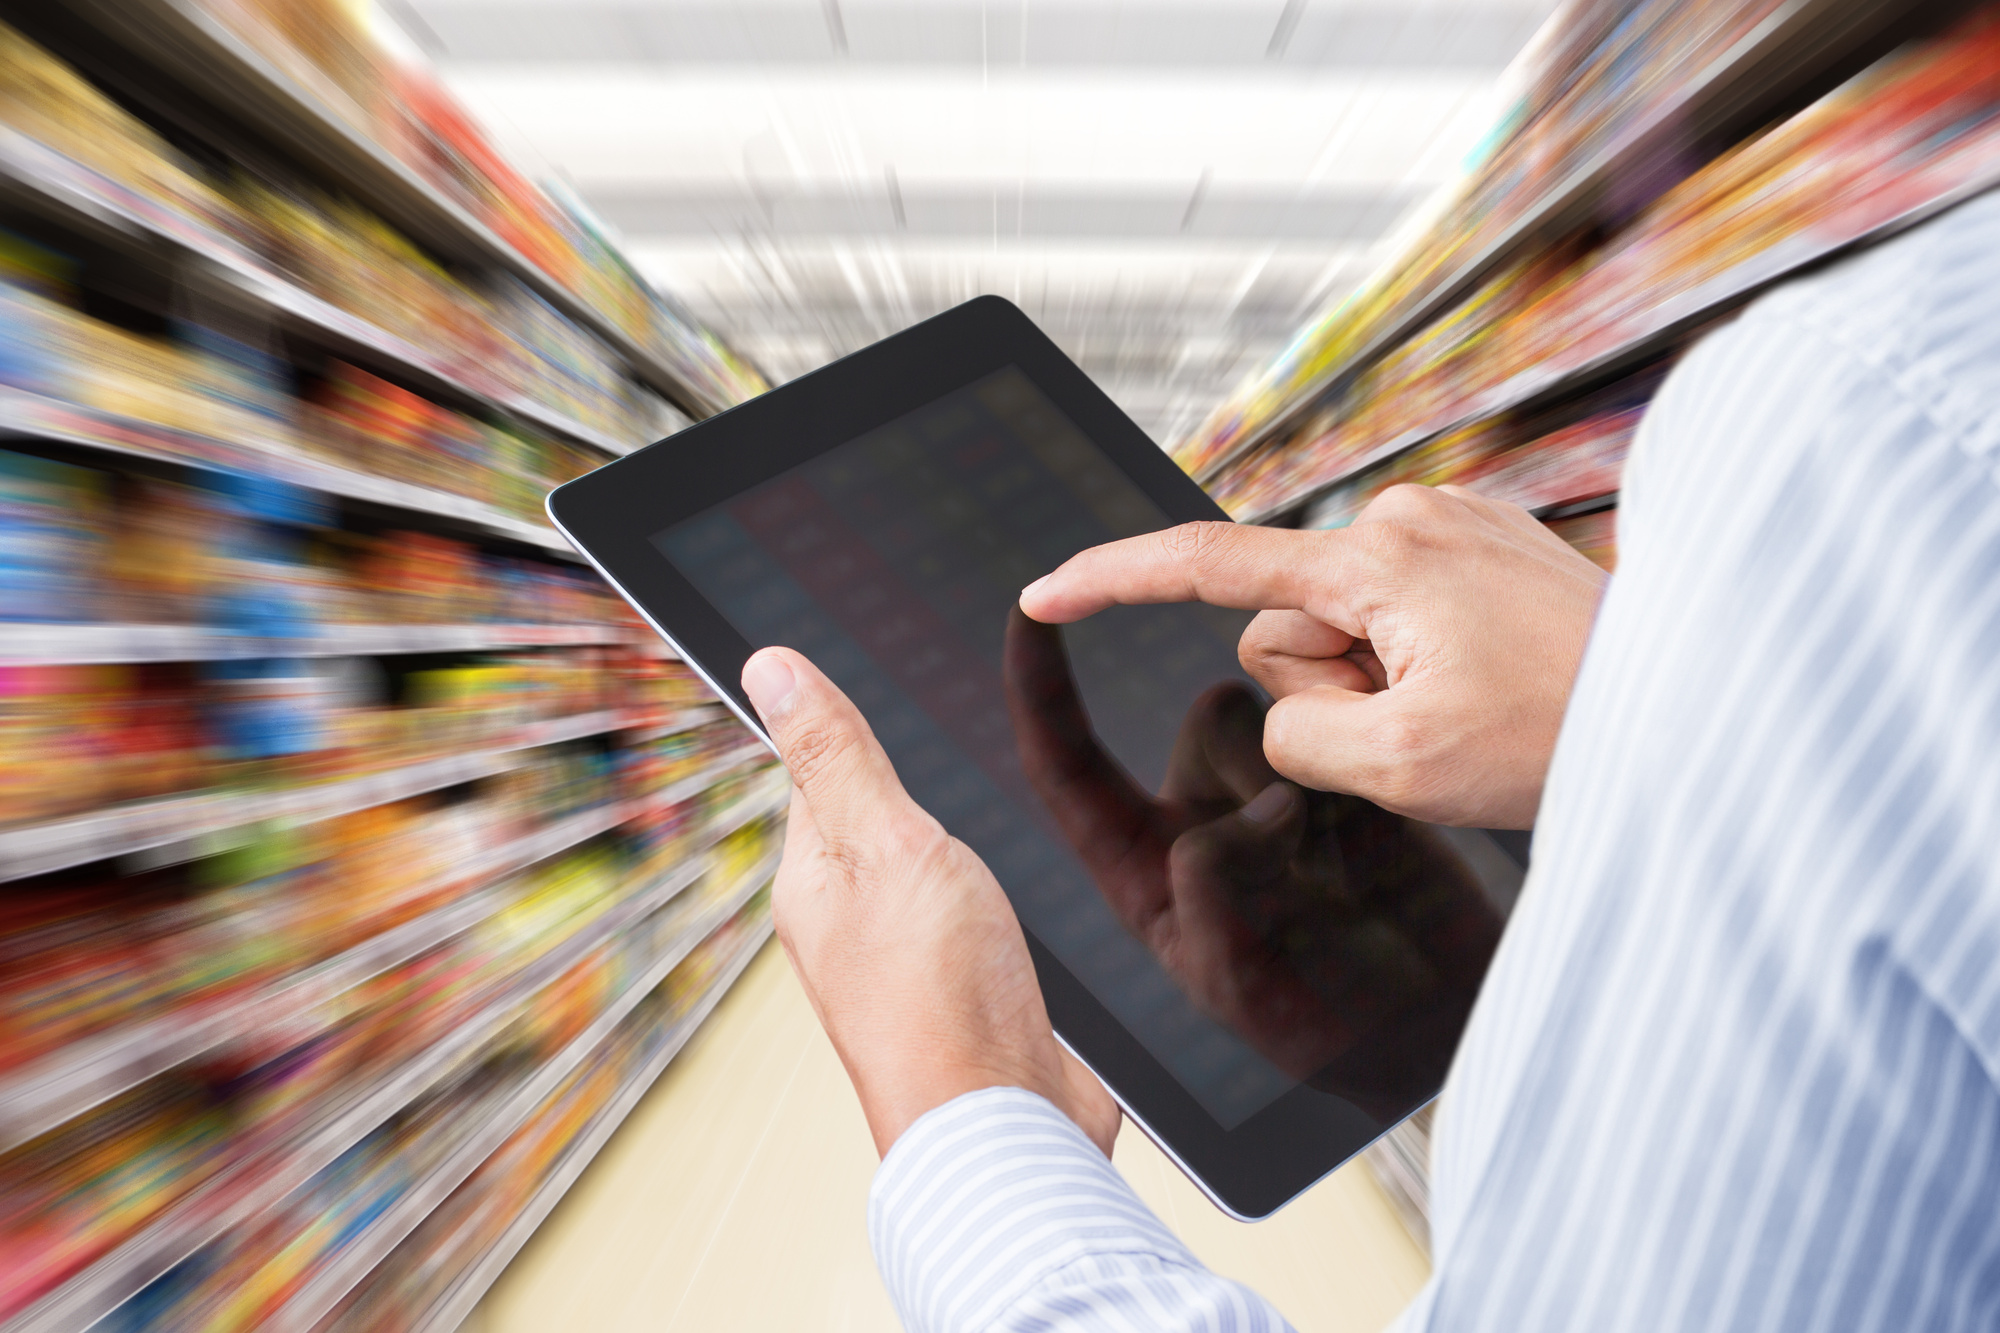 How a Retail Audit Can Help Improve Your Business